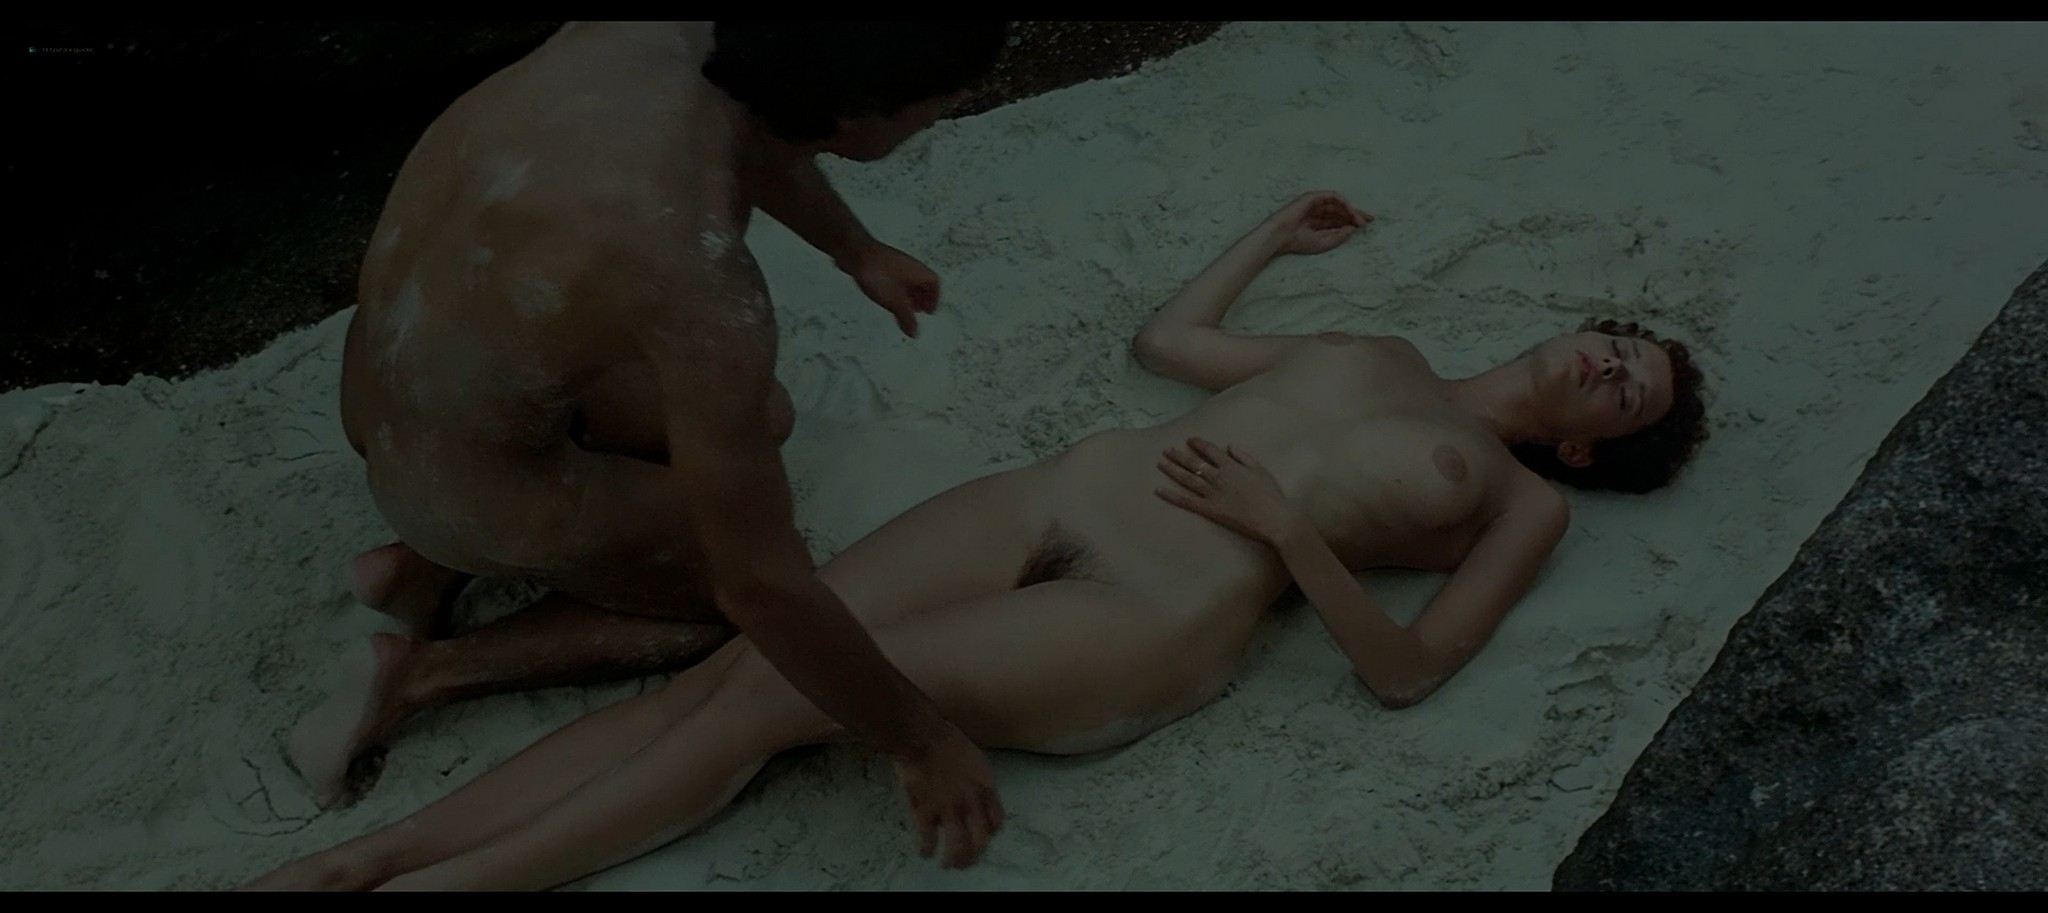 Sylvia Kristel nude full frontal Charlotte Alexandra and others nude sex Good bye Emmanuelle 1977 1080p BluRay 16